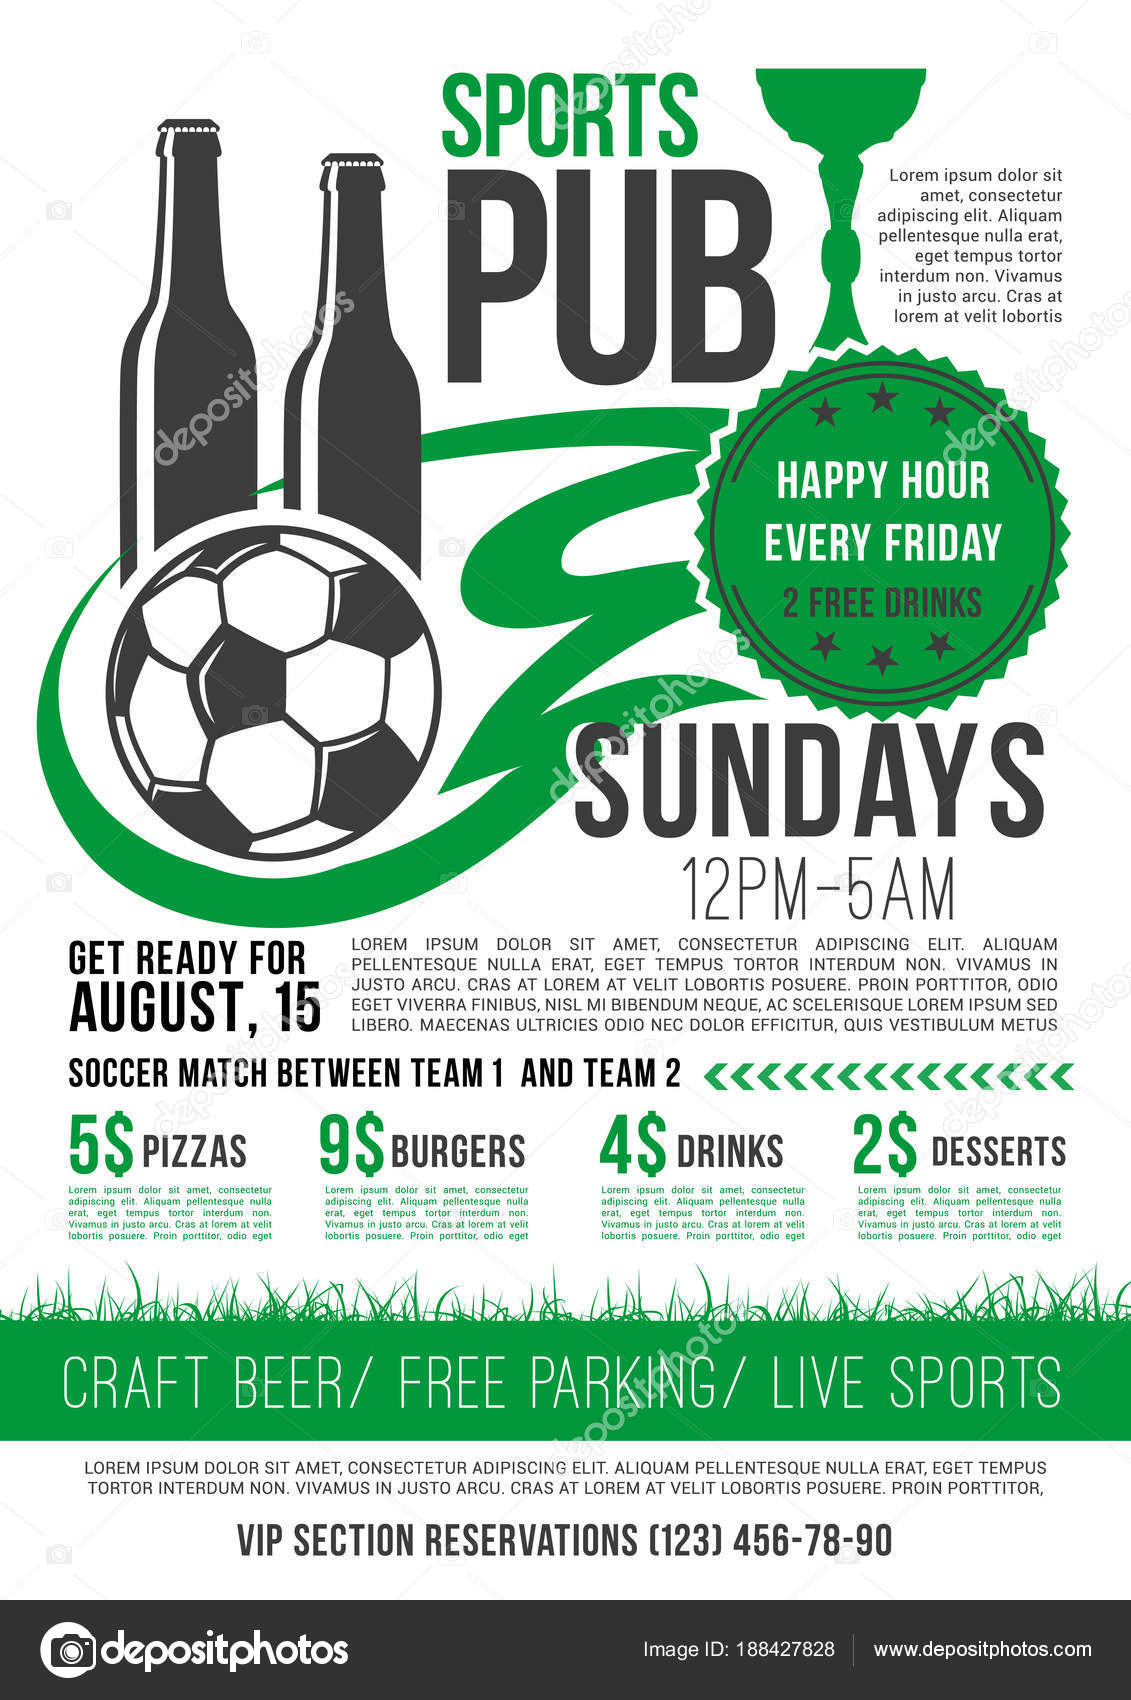 Soccer Sports Bar Menu Template For Football Championship Happy Hour Specials On Pizza Burgers And Beer Drinks Desserts Vector Snacks